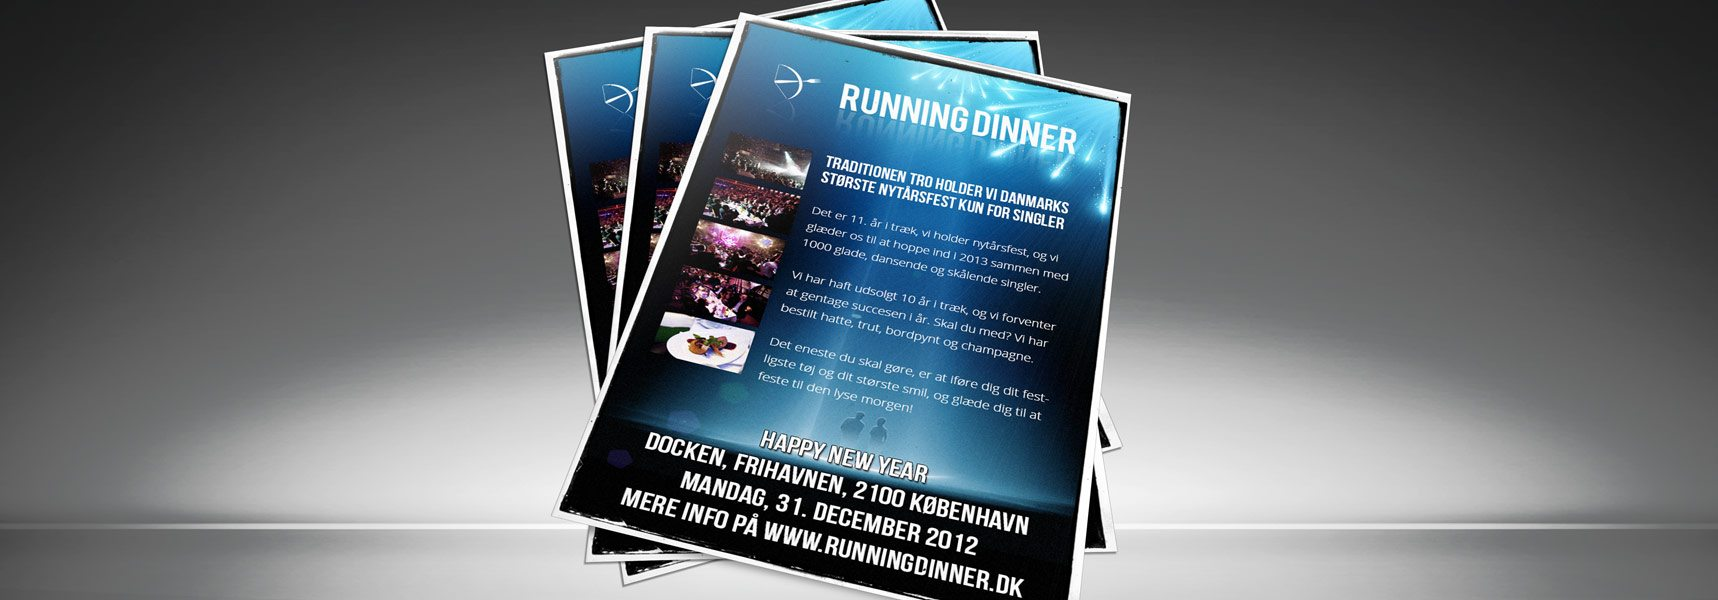 runningdinner-invite2012-l